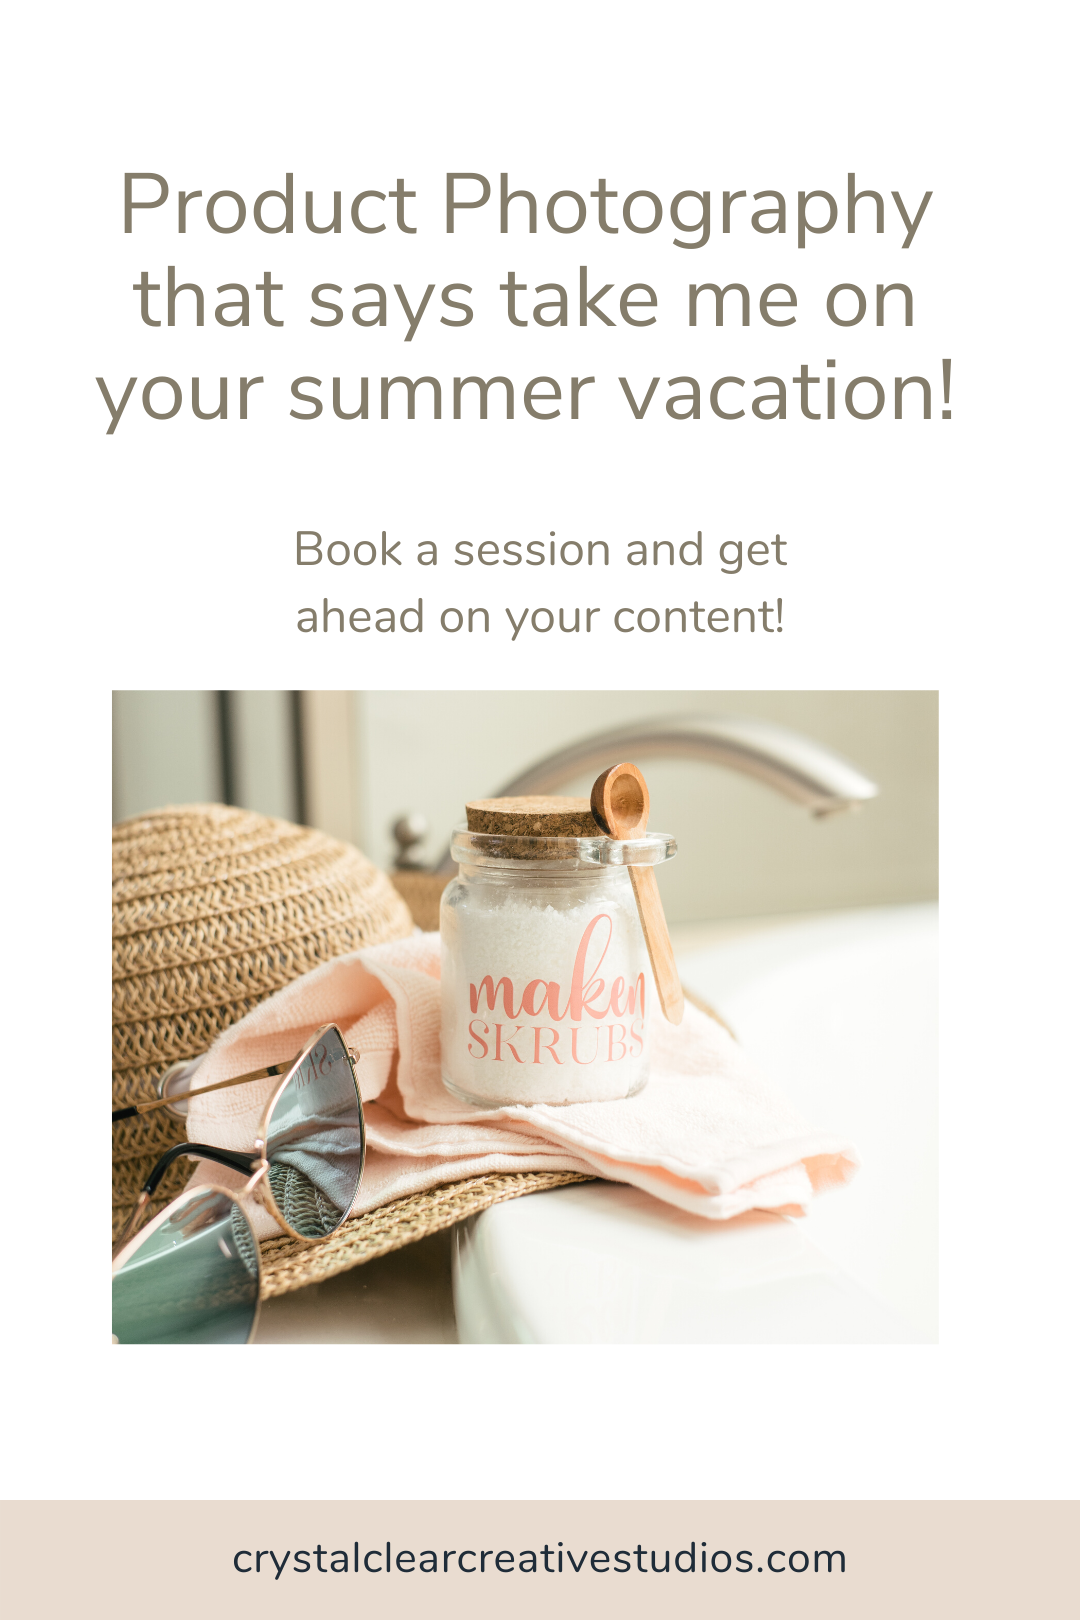 Product photography that says take me on your summer vacation!